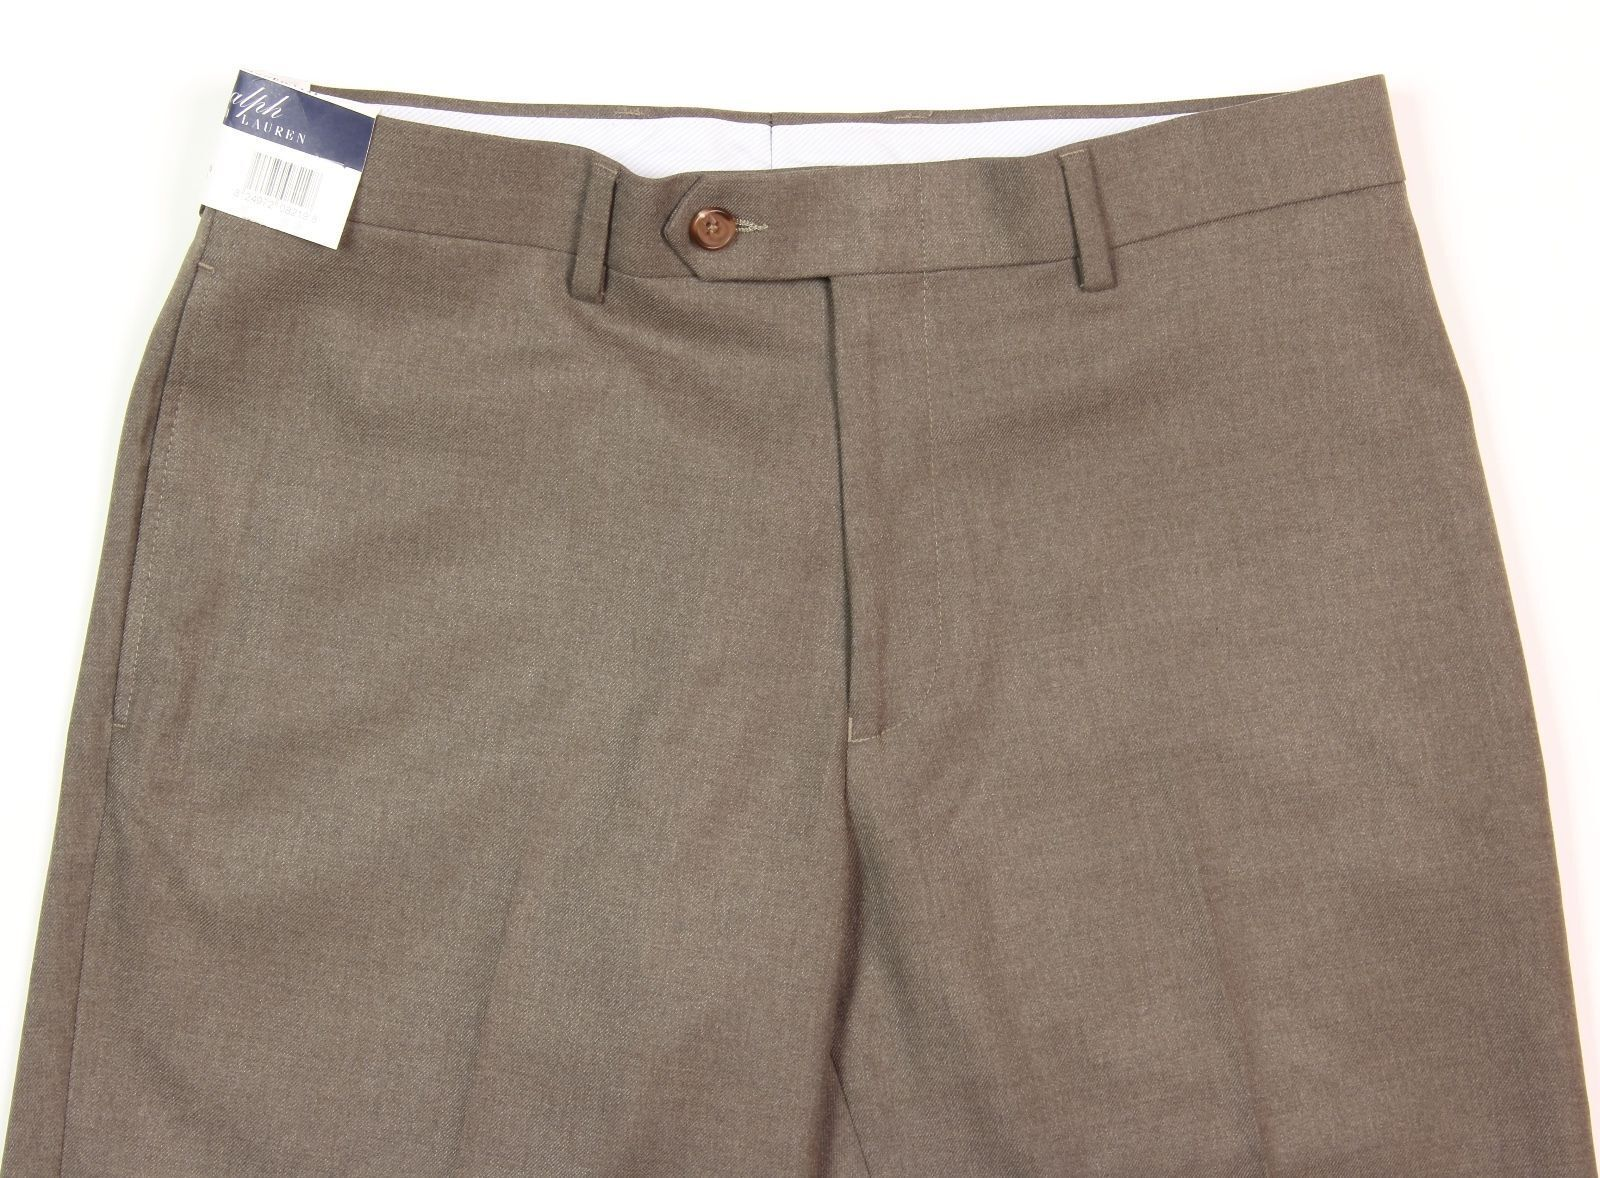 Men's RALPH LAUREN Light Brown Flat Front Dress Pants 30x30 NWT NEW Comfort Flex